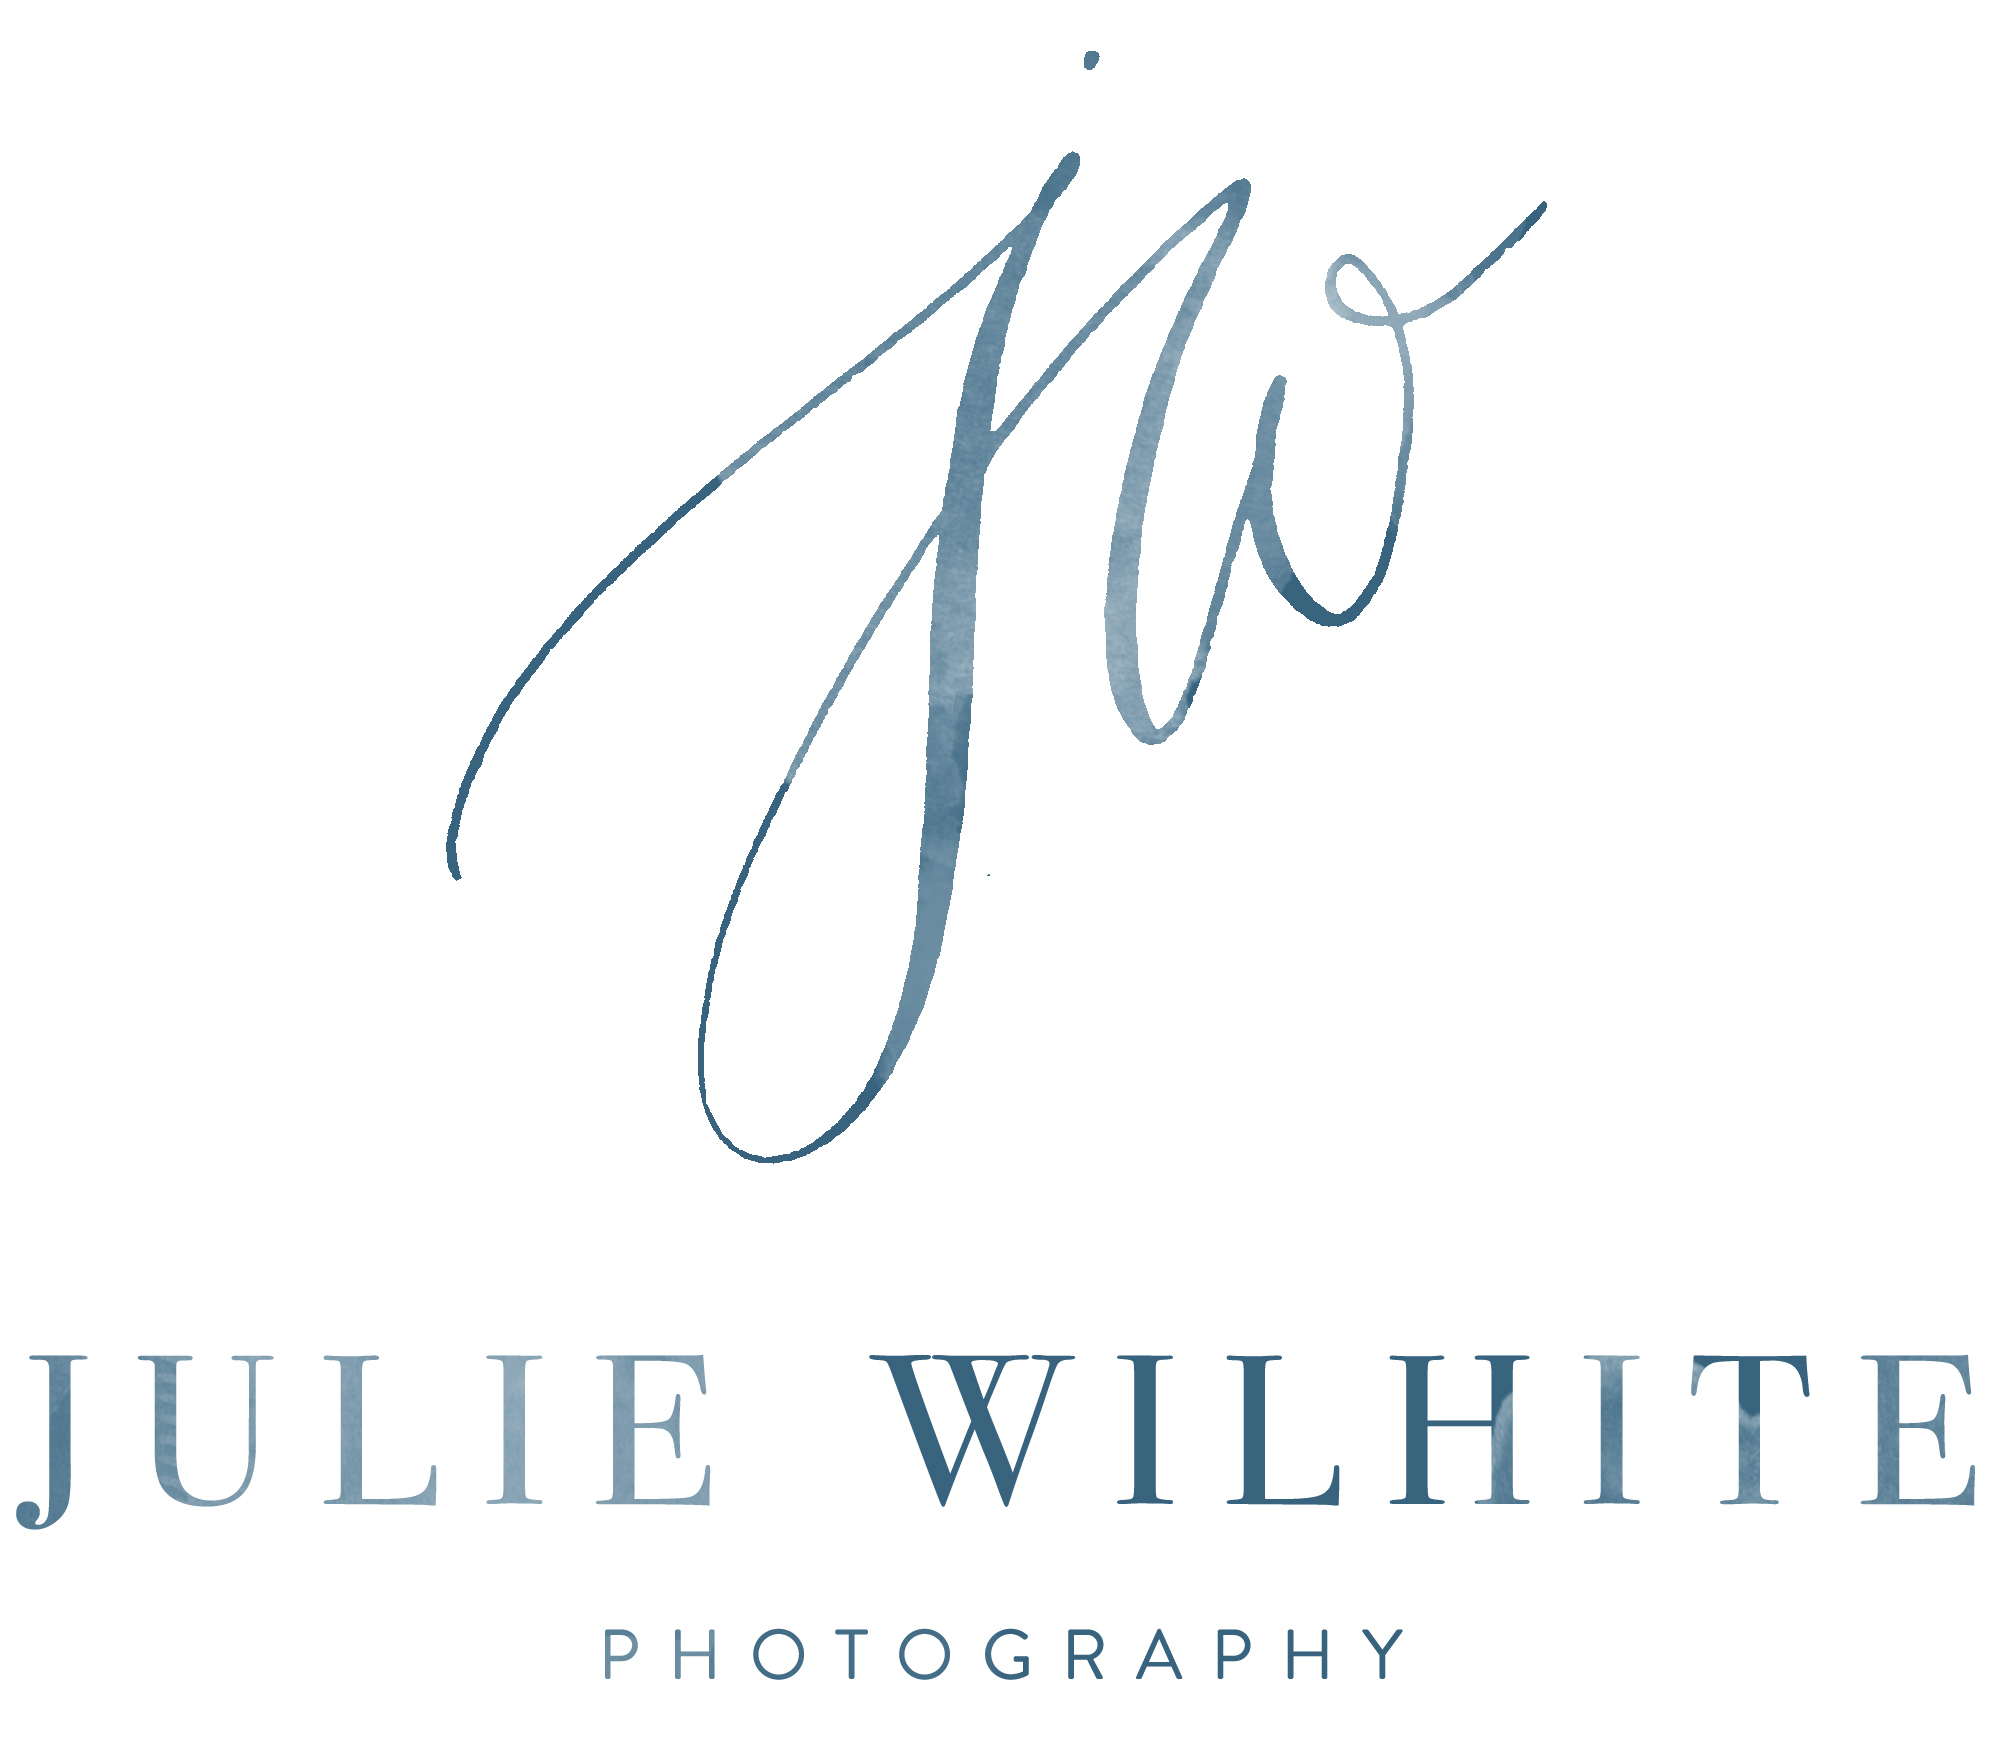 Julie Wilhite Photography Photography